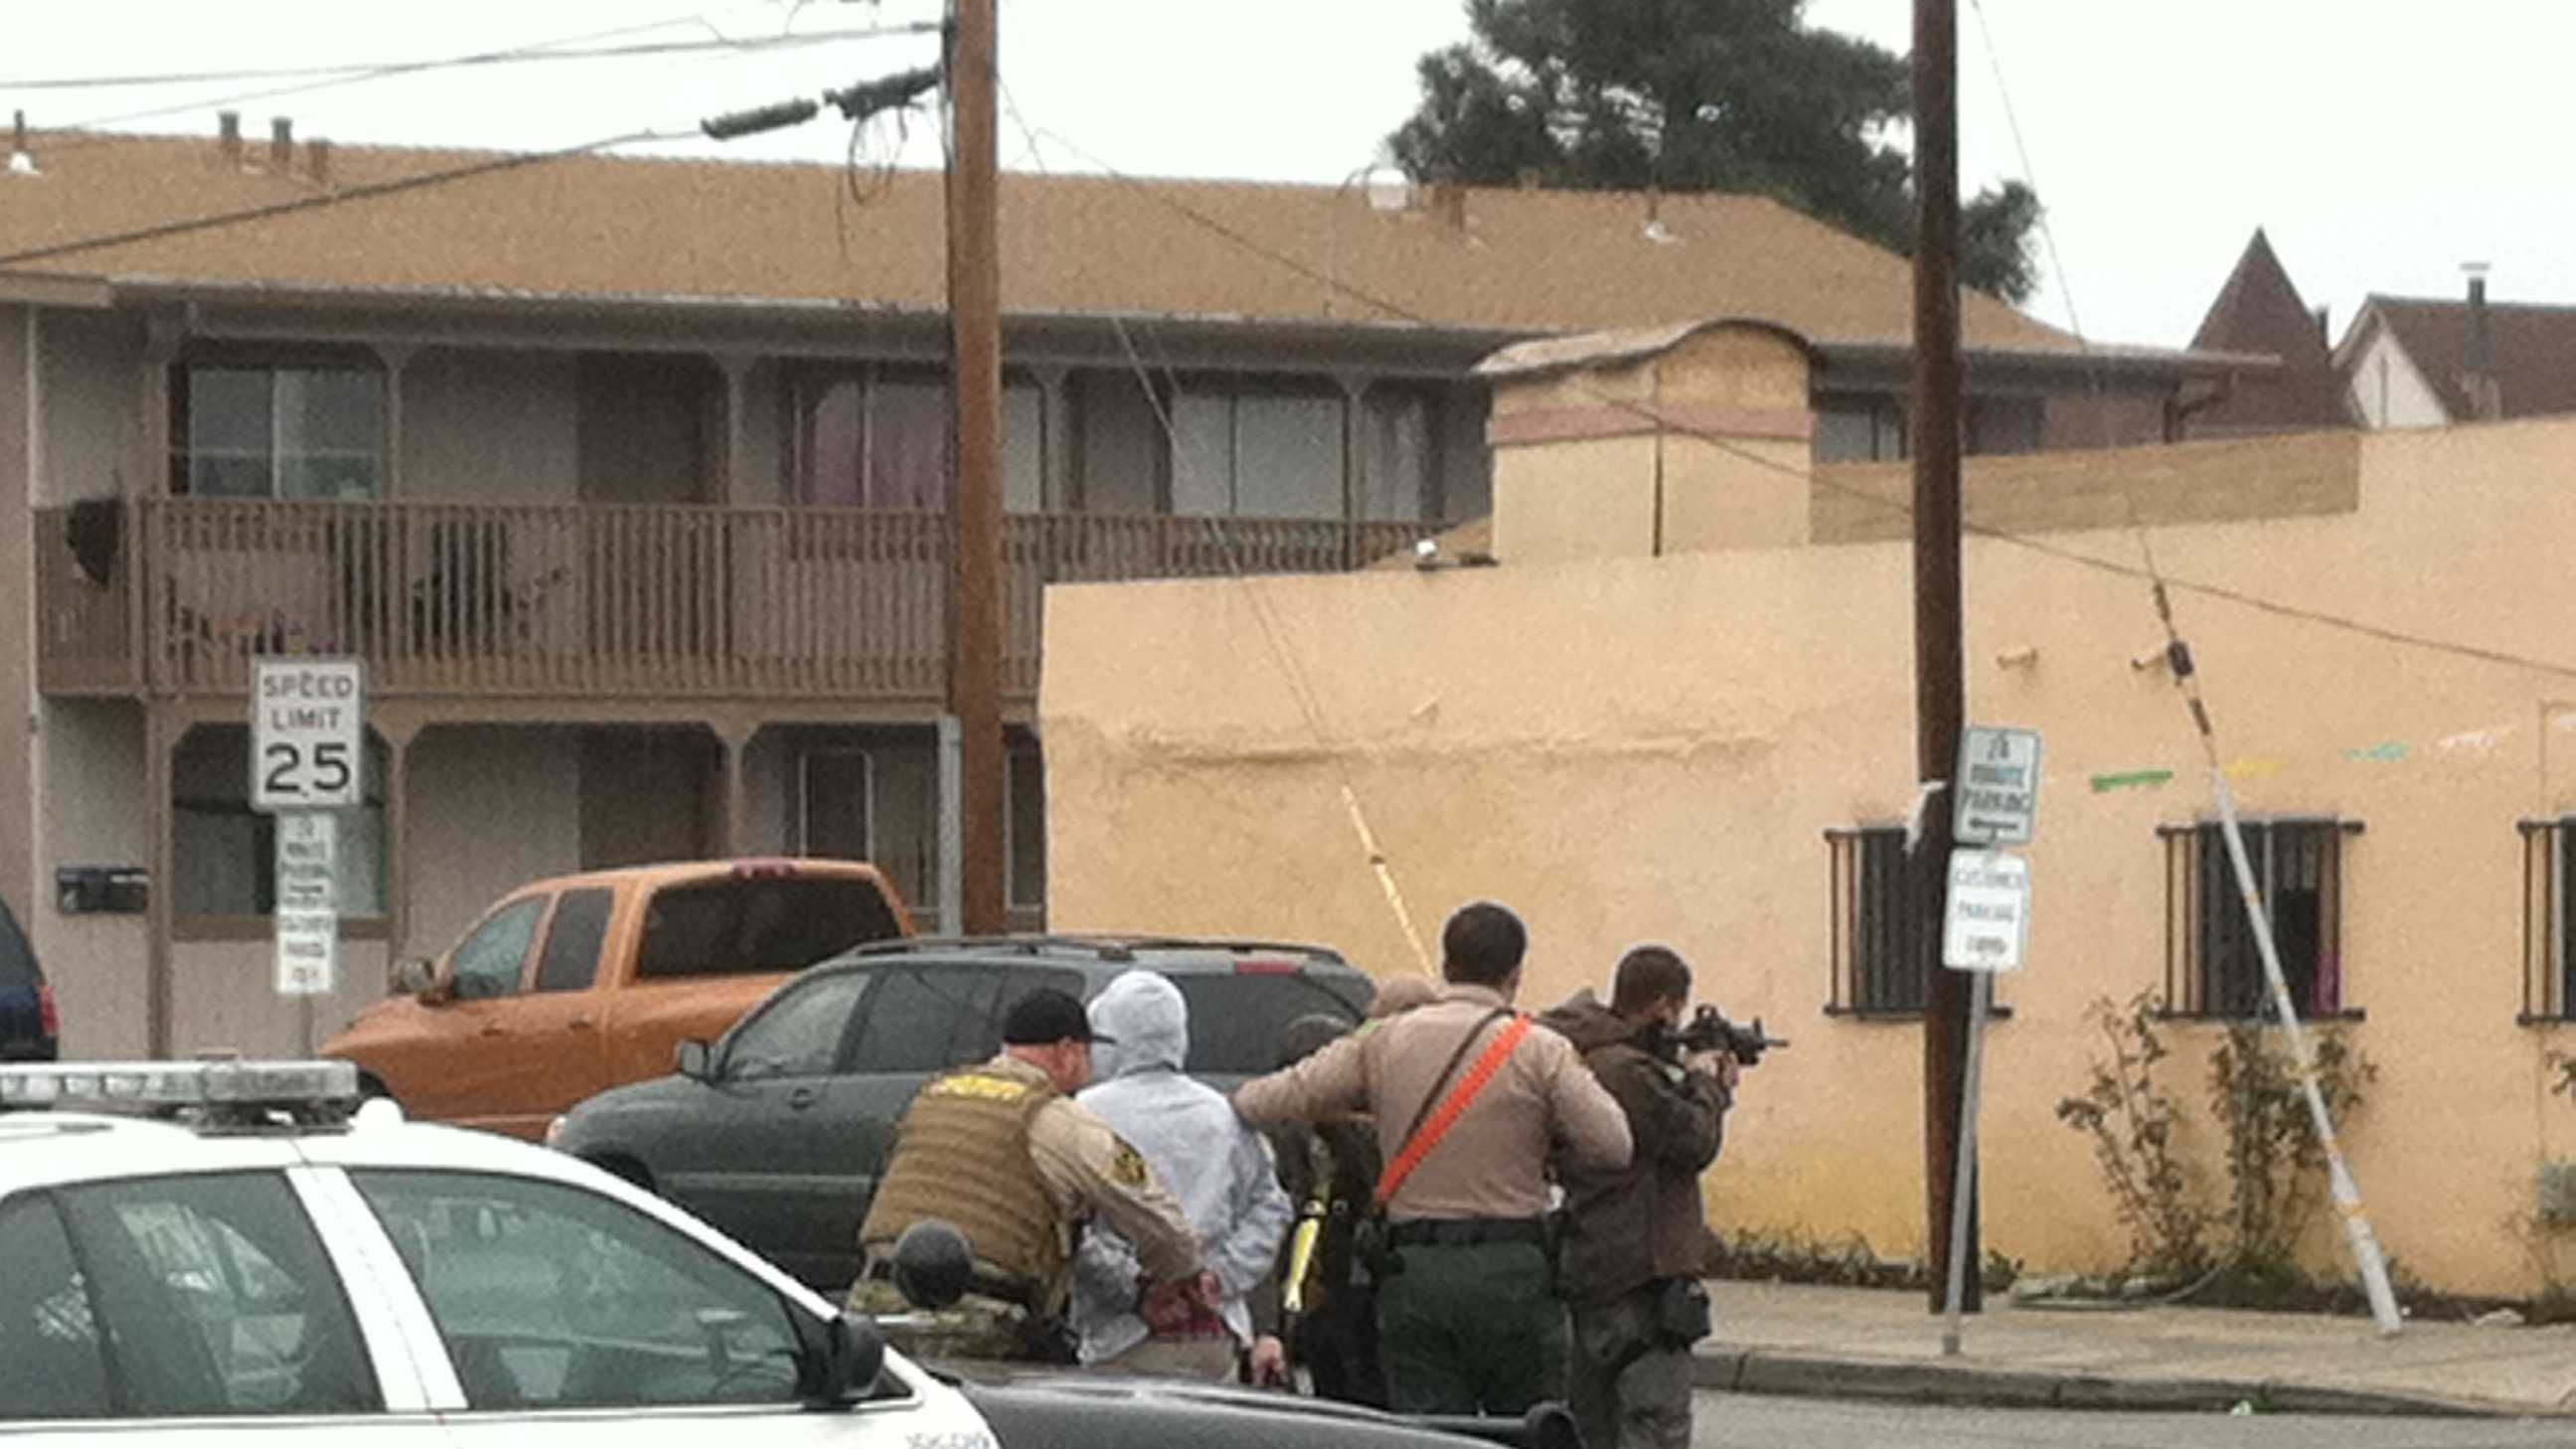 3-hour standoff ends in Pajaro